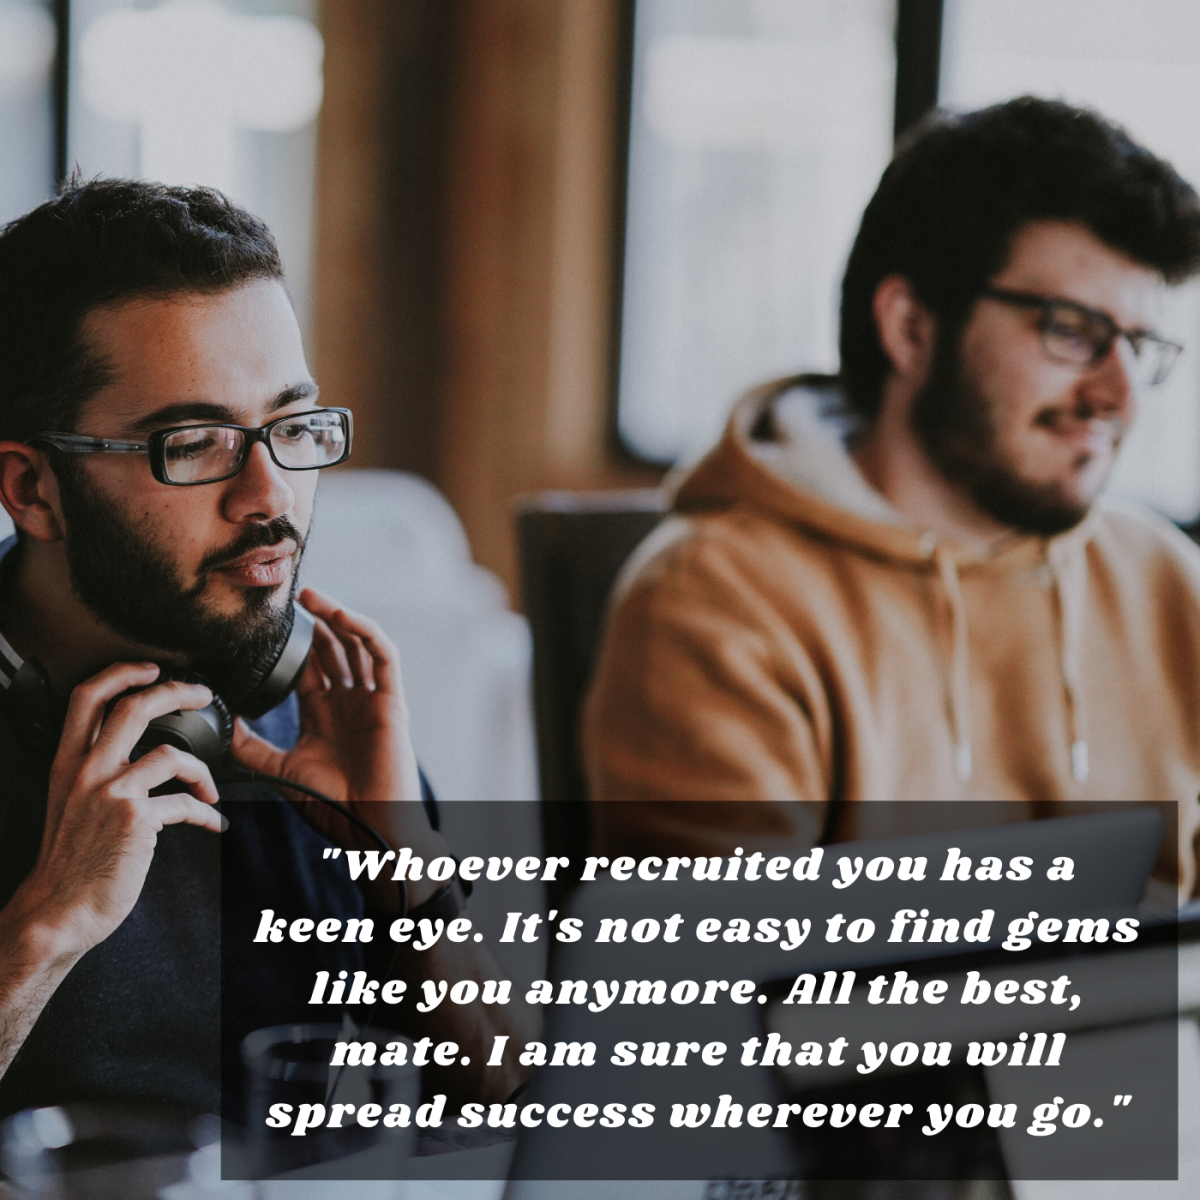 """""""Whoever recruited you has a keen eye. It's not easy to find gems like you anymore. All the best, mate. I am sure that you will spread success wherever you go."""""""